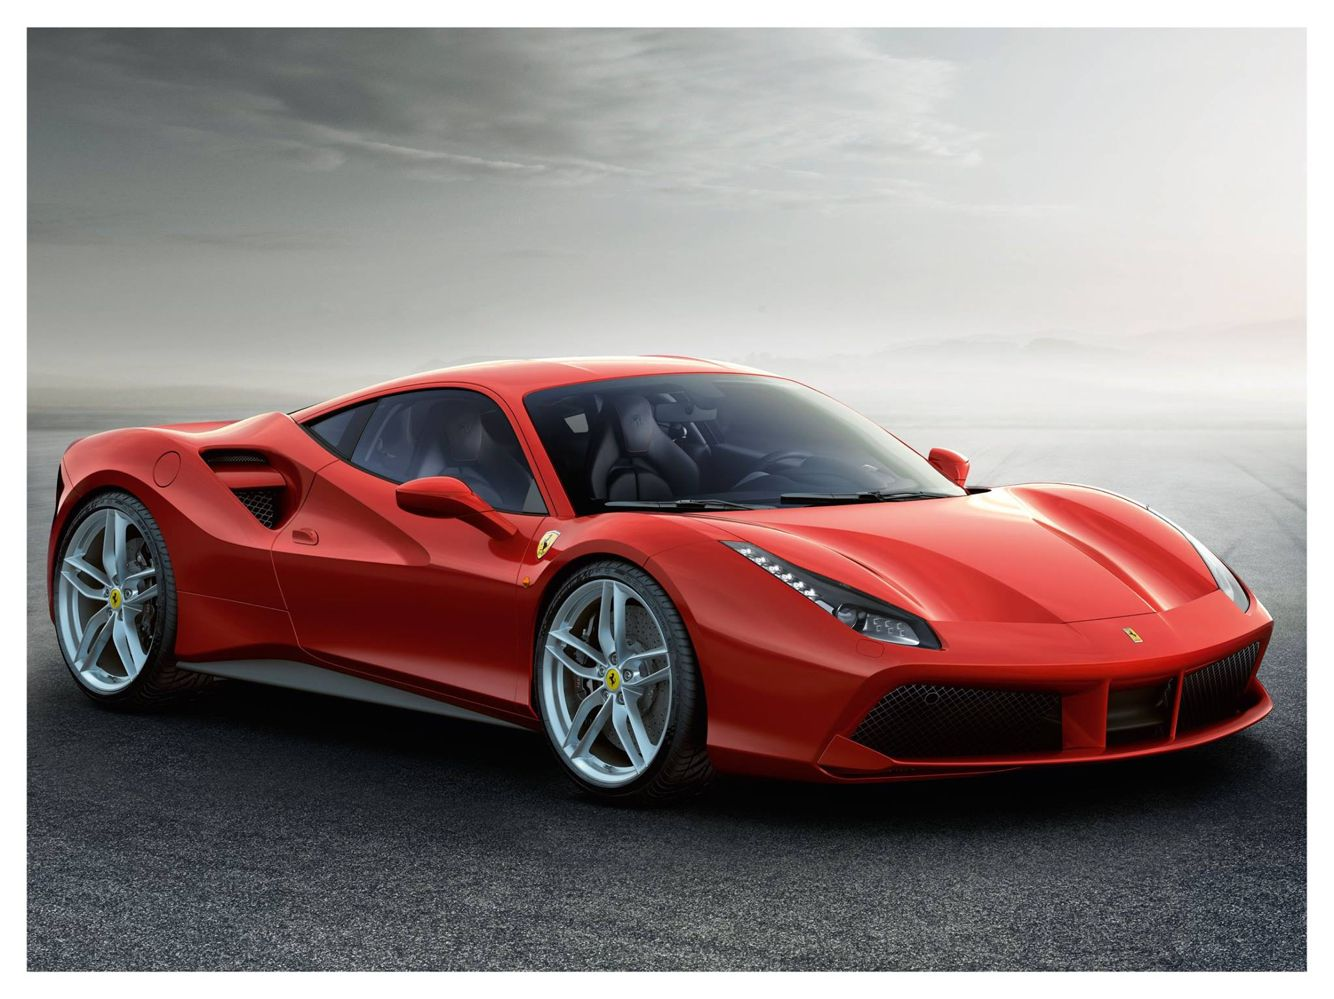 The Ferrari 488 GTB will go into production from September 2015, after the 458 Italia range gets discontinued this summer.